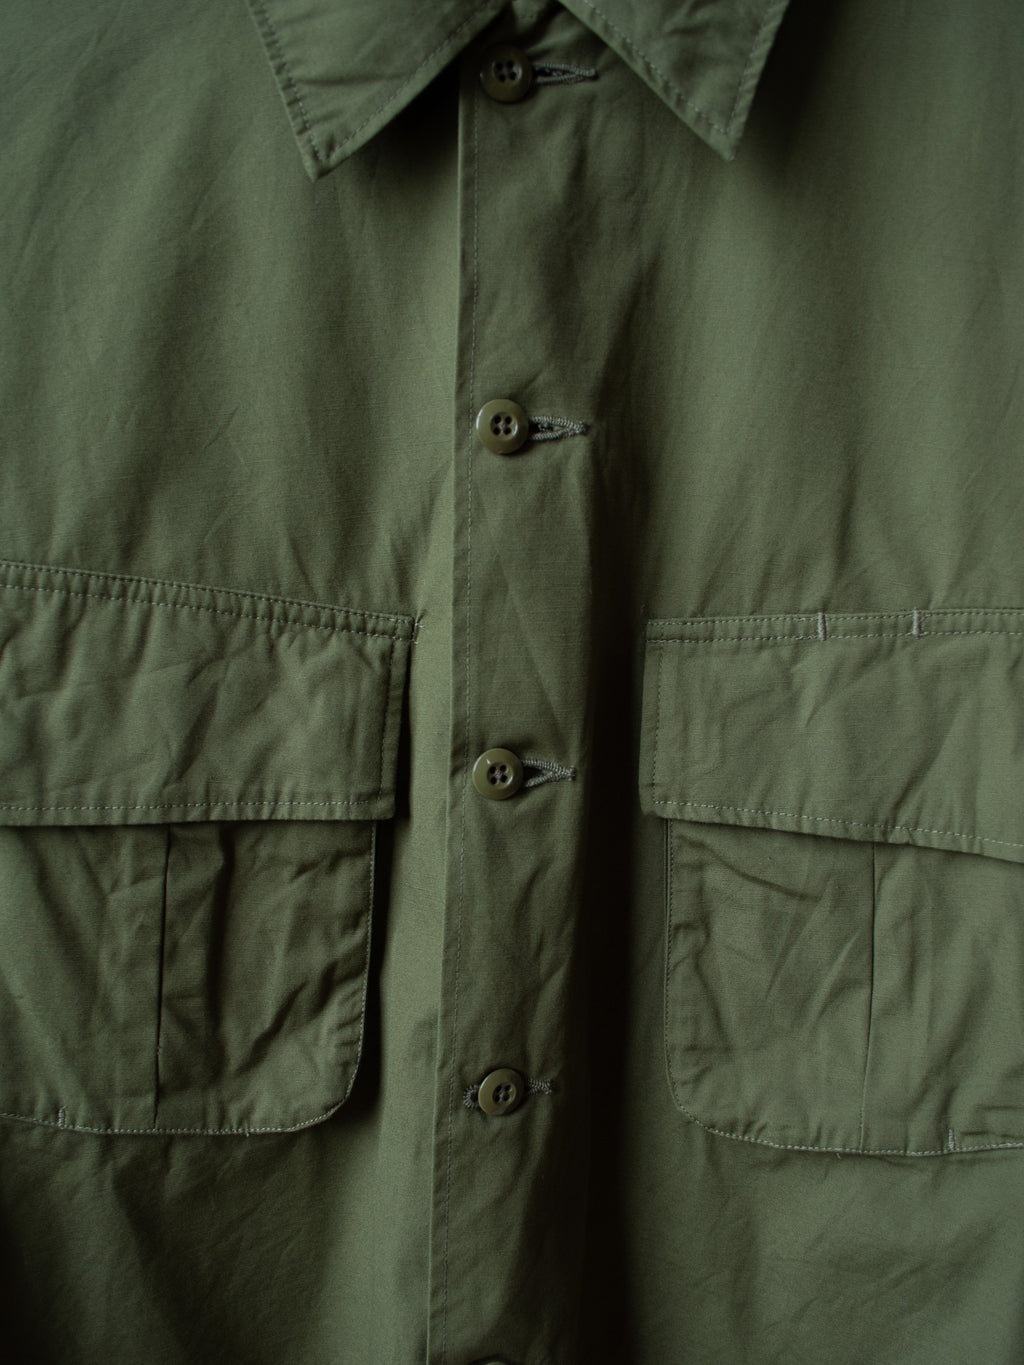 Namu Shop - A Vontade Fatigue Shirt Jacket - Olive